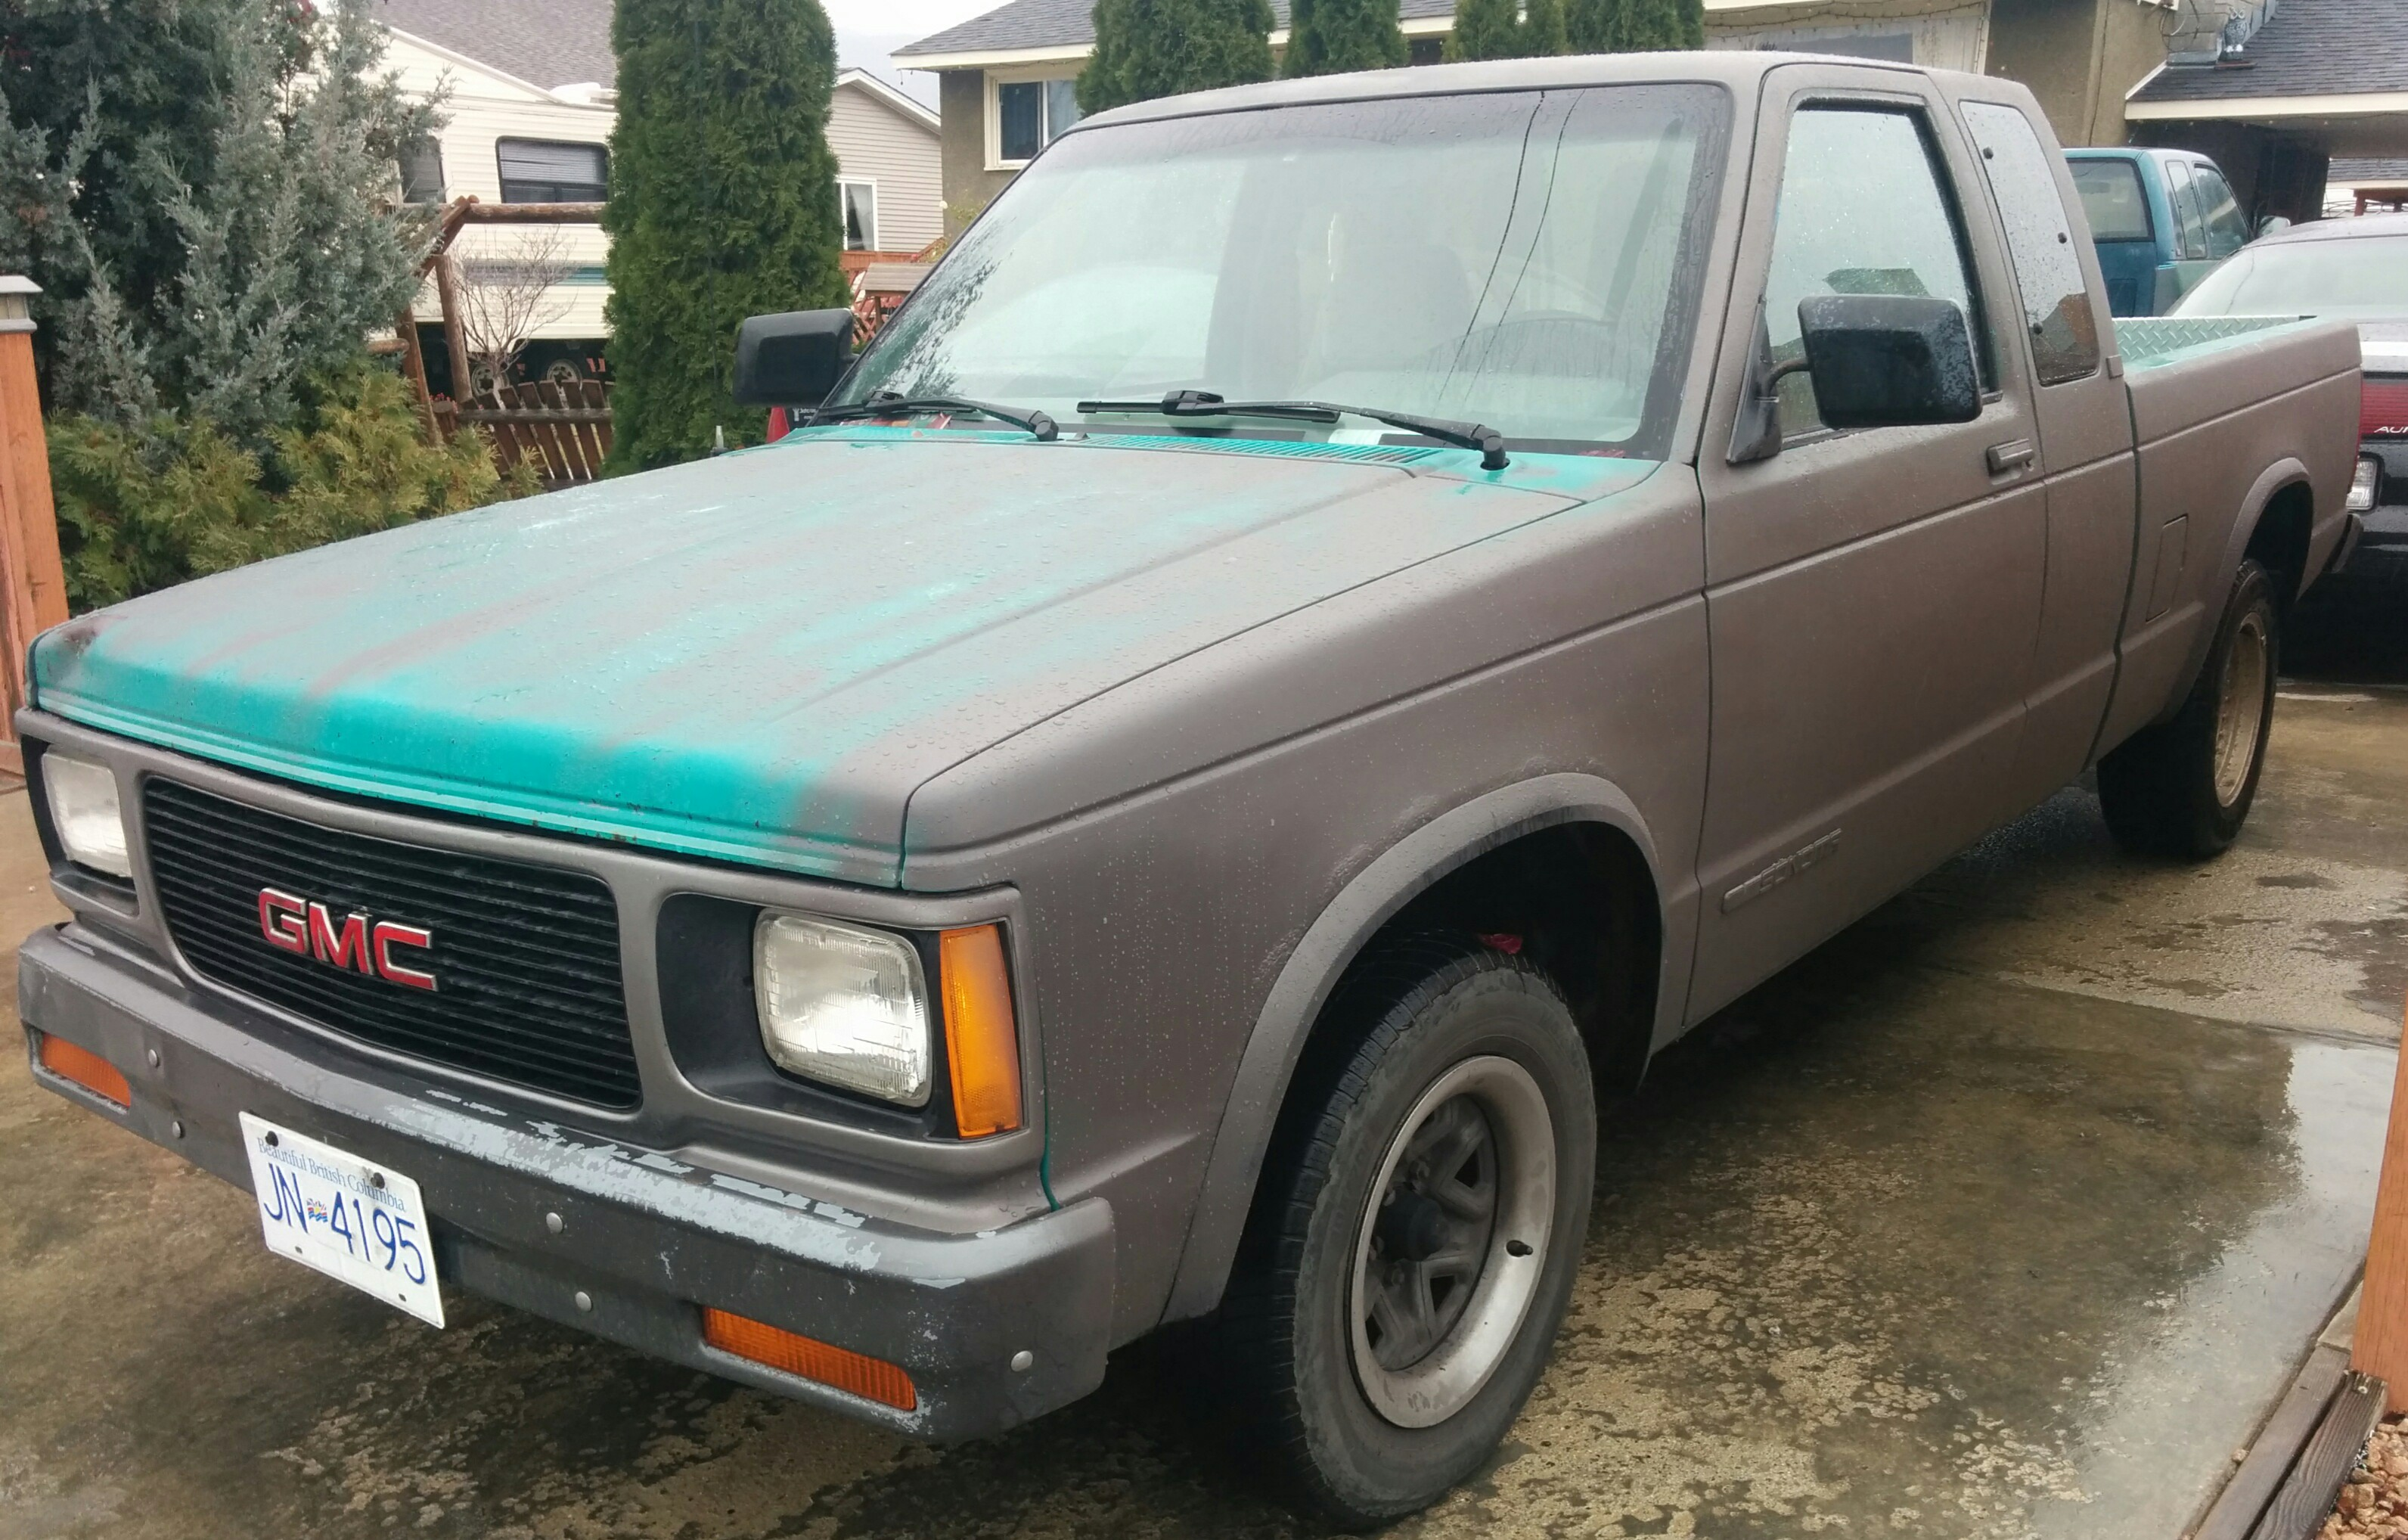 Recently Picked This Truck Up For 300 1992 Sonoma 200 000km 4 3l 5spd 2wd Was Originally That Ugly Seafoam Green Colour Covered In Rust Spots I M Almost Done Laying The Flat Bronze Andozied